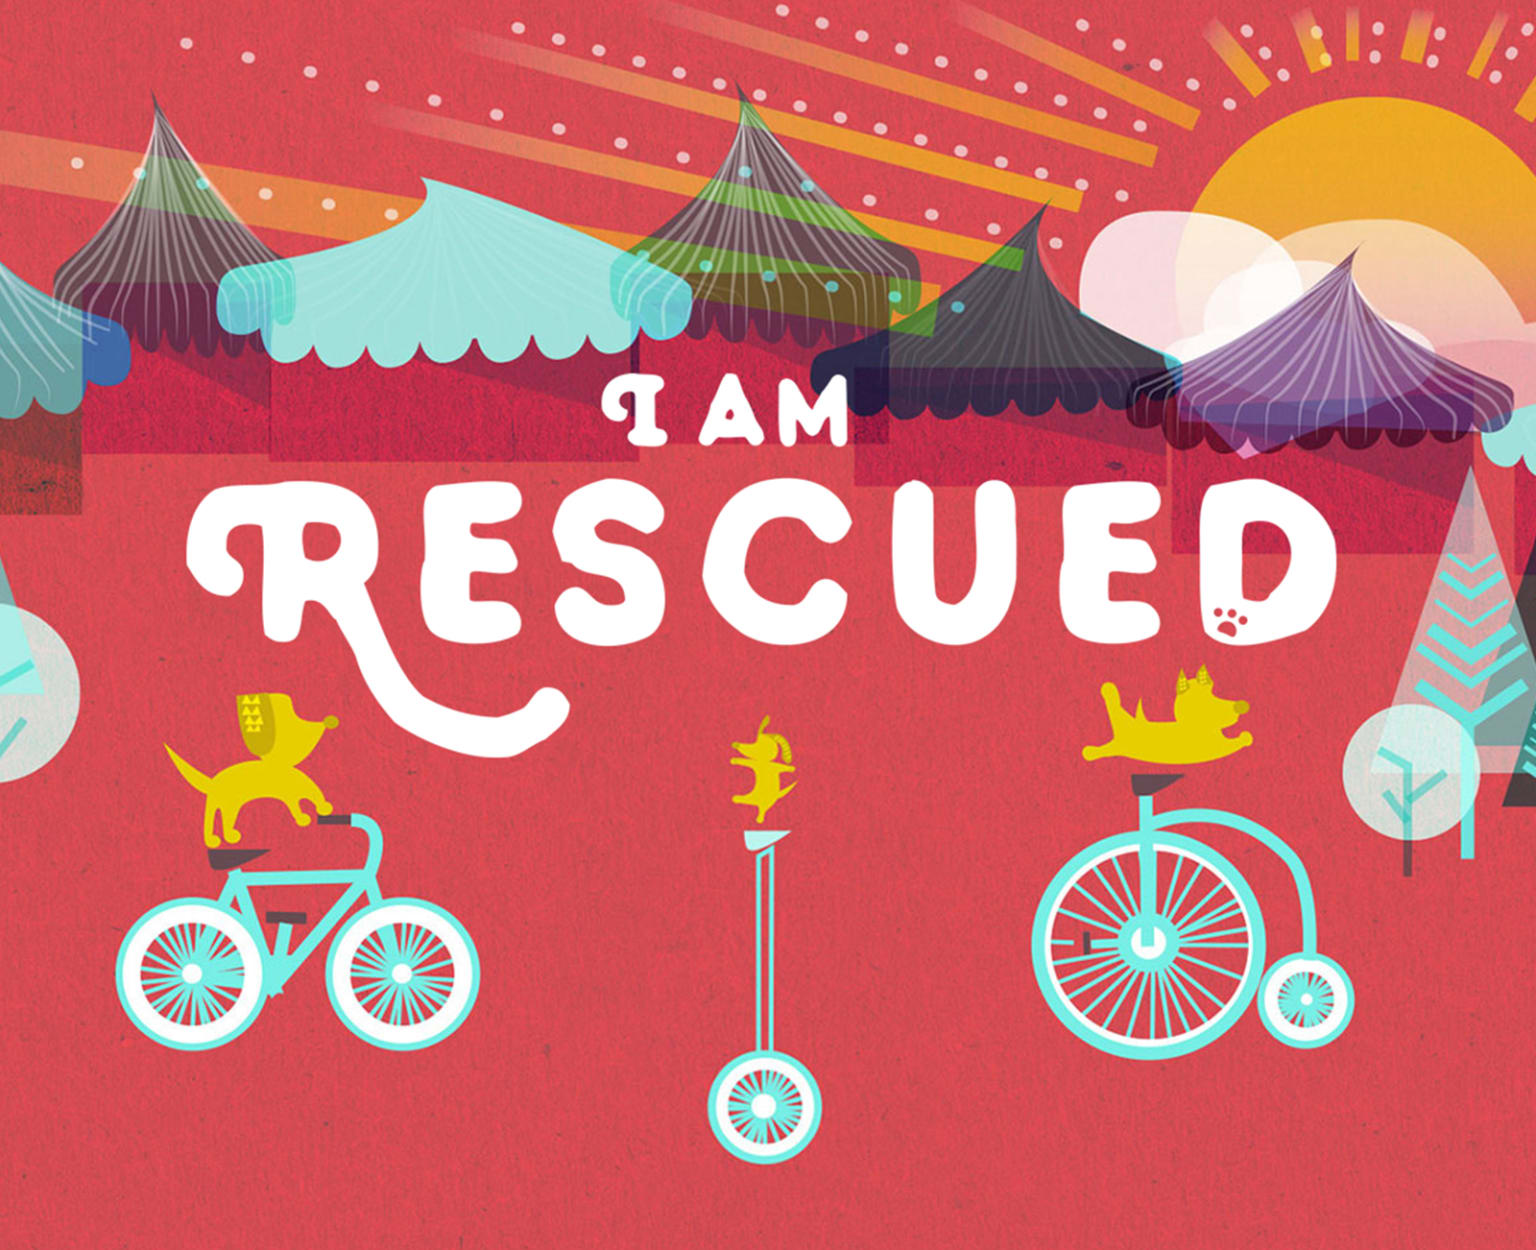 I Am Rescued